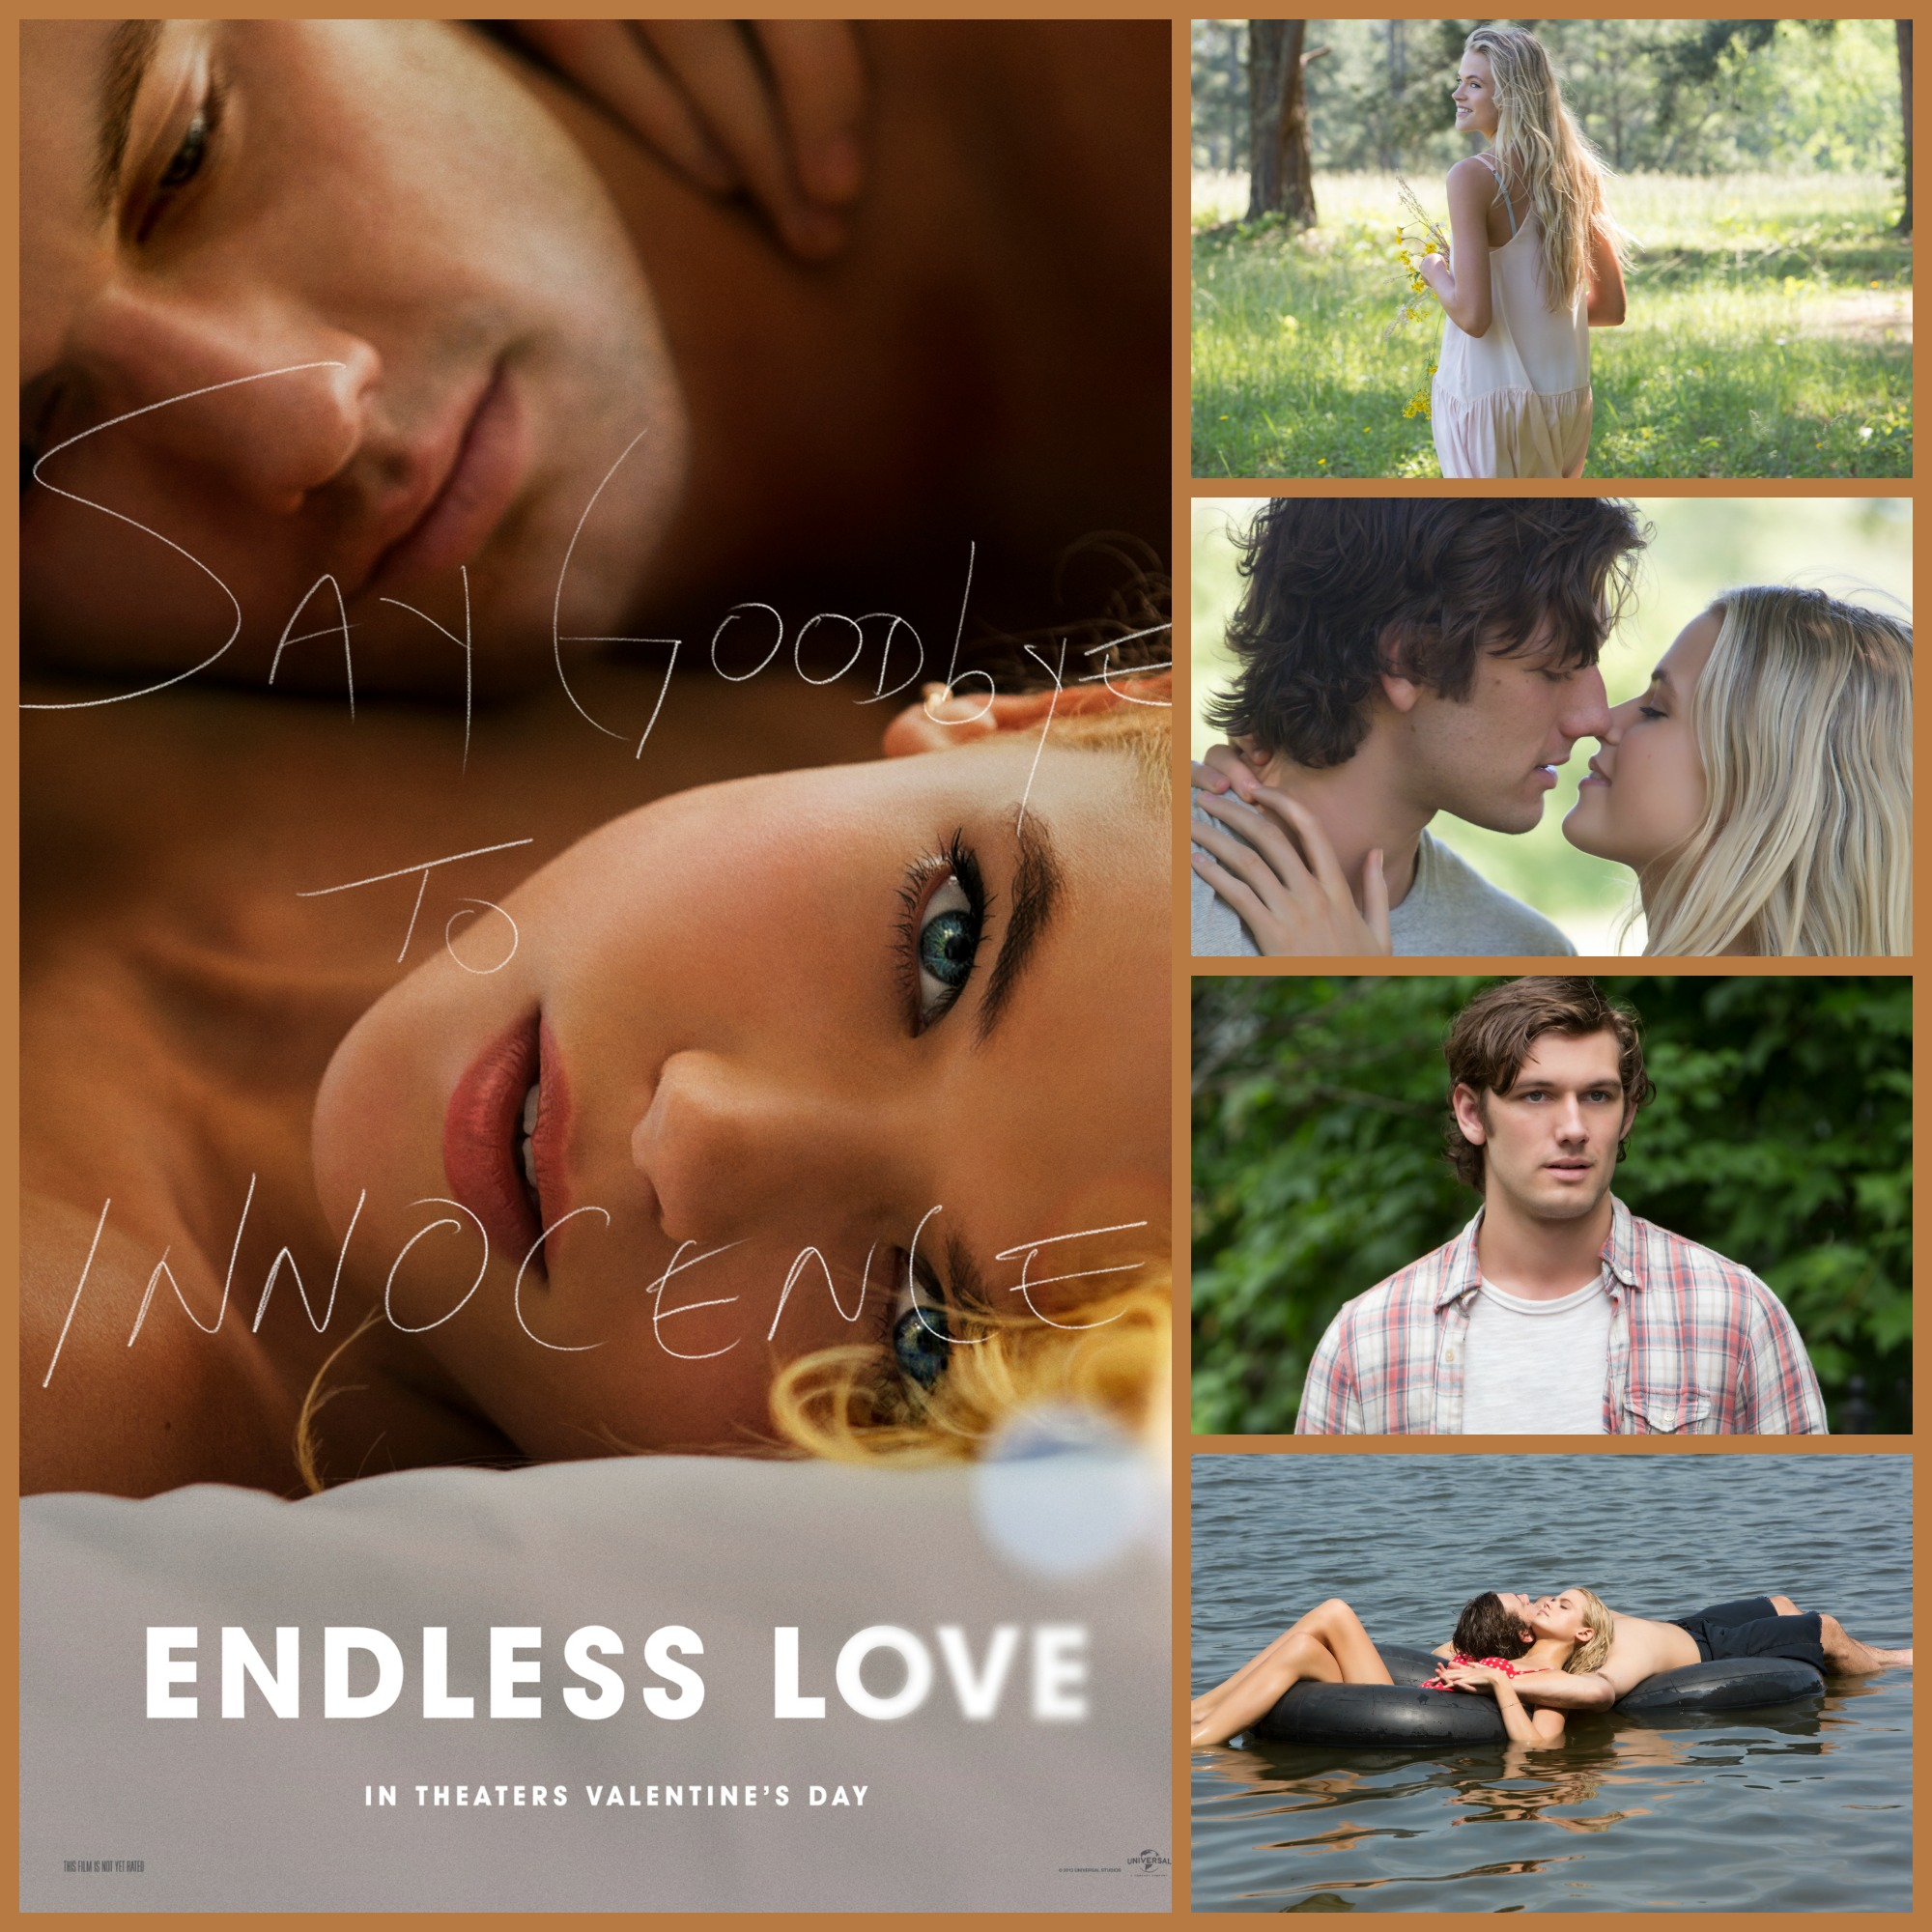 an endless love story quotes quotesgram